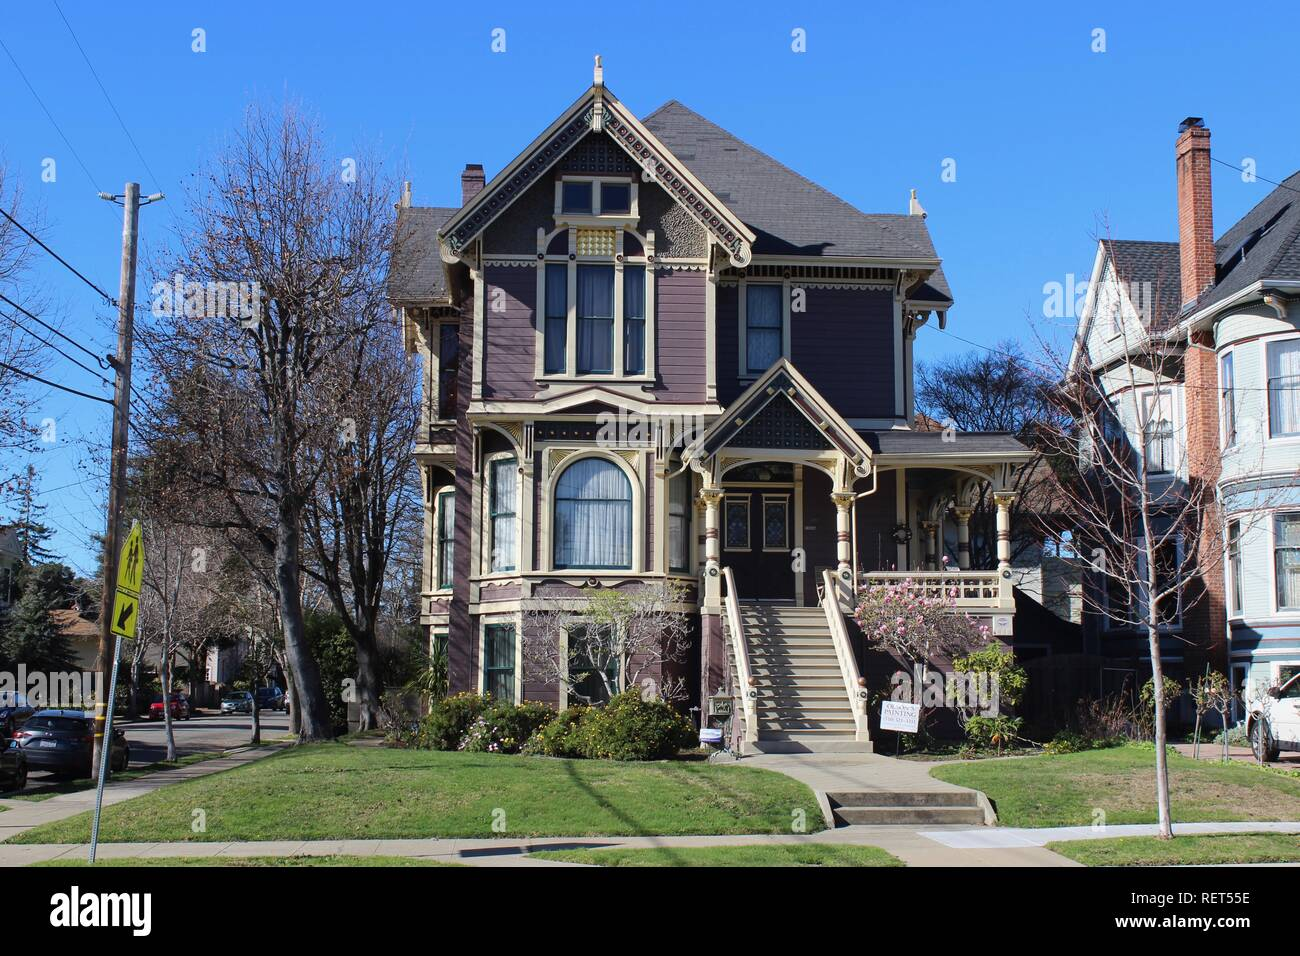 Queen Anne House, built 1891, Alameda, California - Stock Image